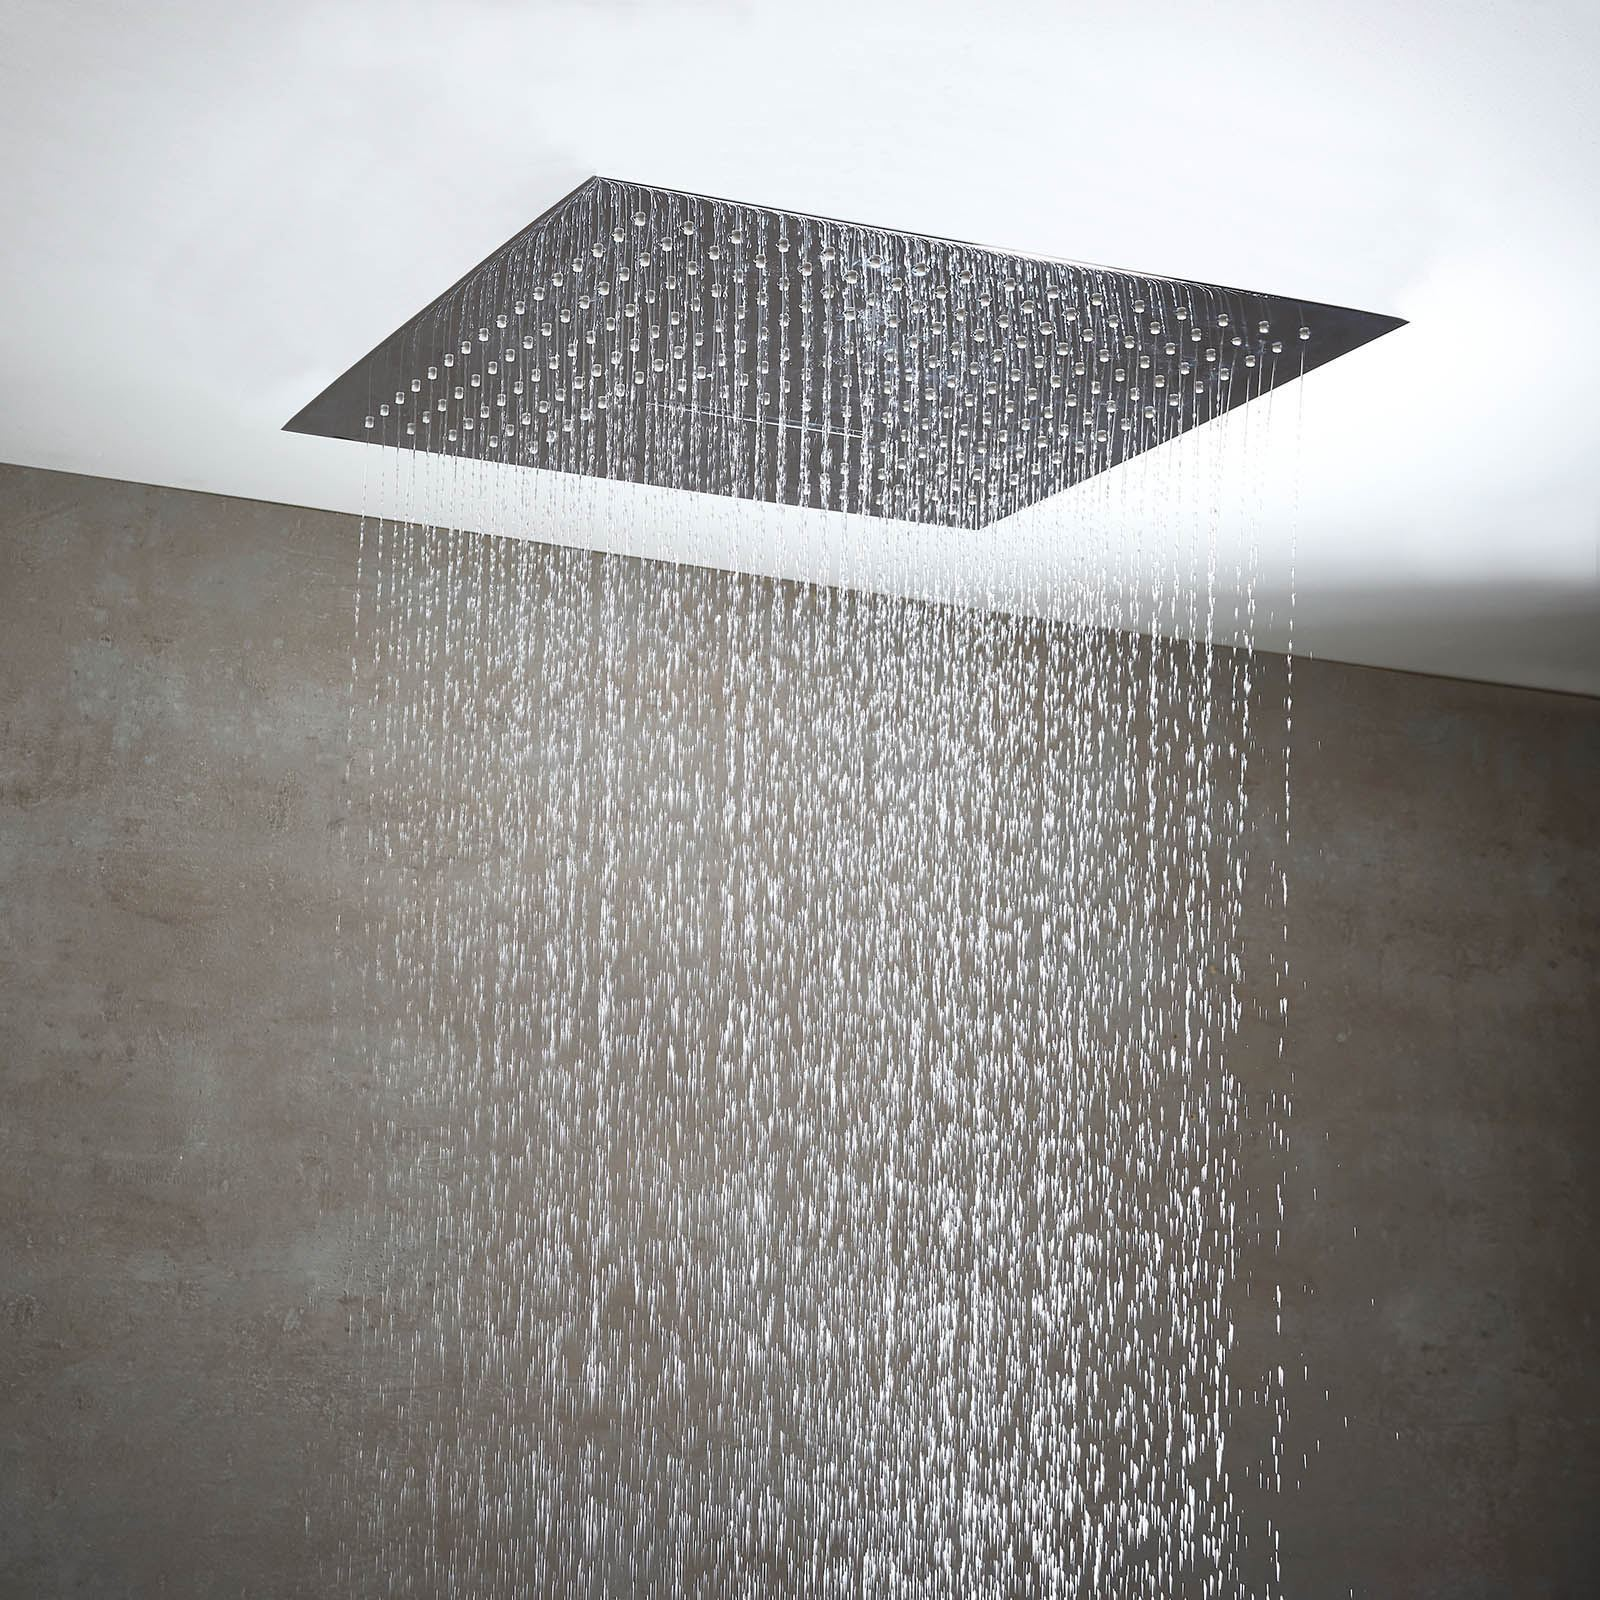 Details About 500mm Square Luxury Ceiling Mounted Shower Head Waterfall 3 Settings